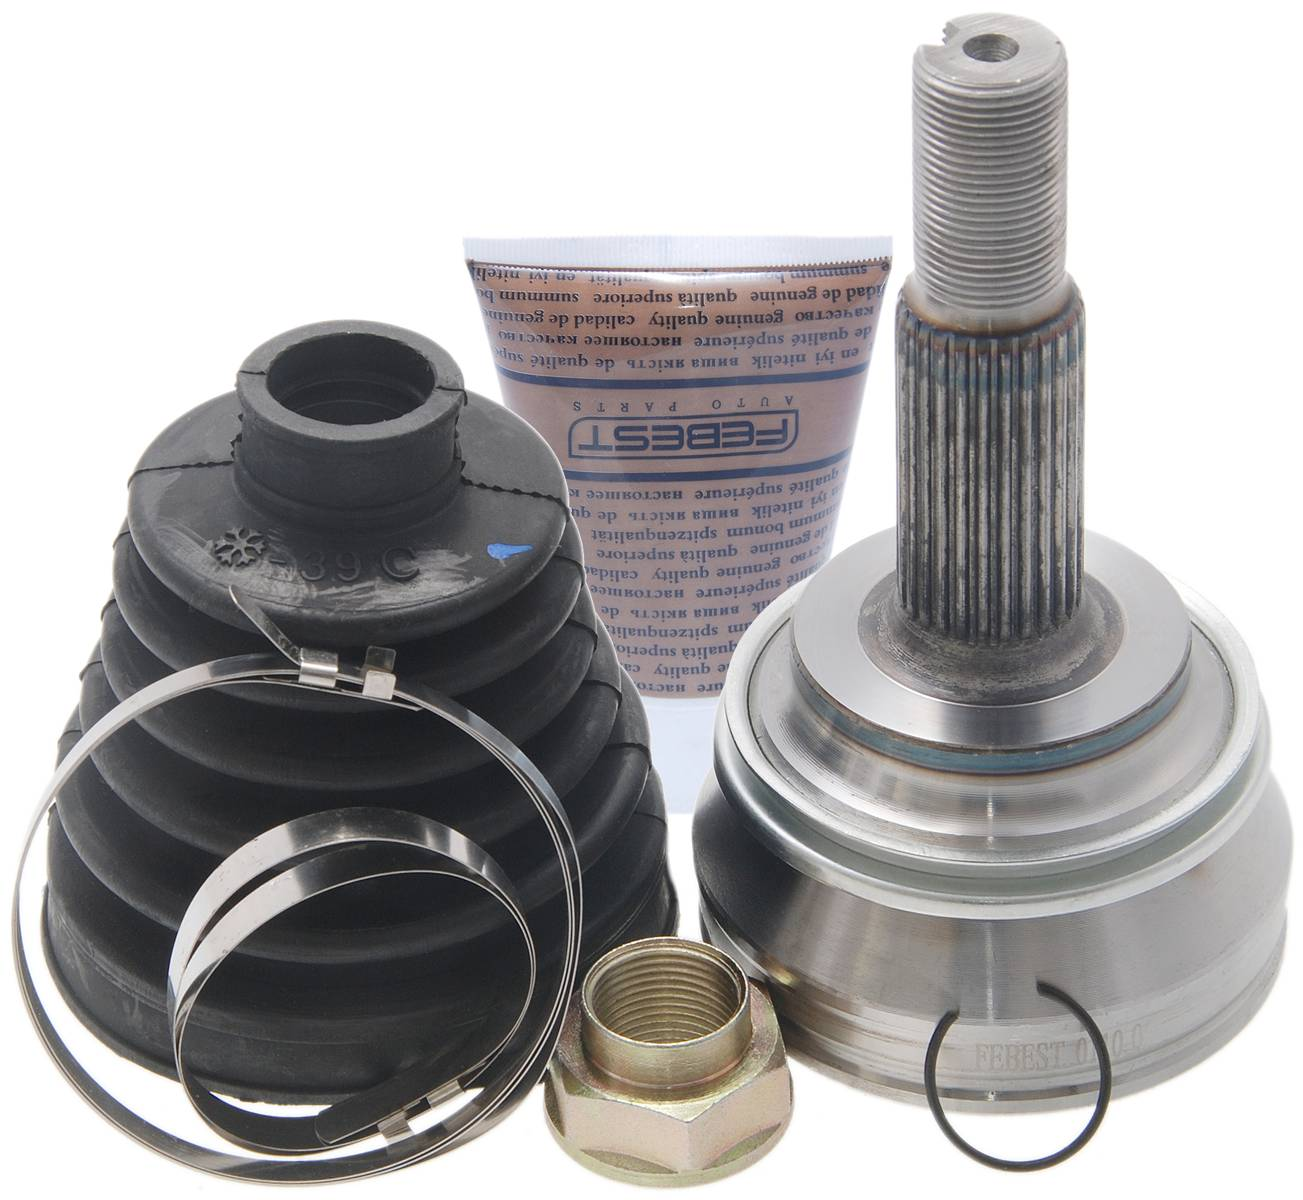 Febest 0110-055 OUTER CV JOINT 24X58X26, TOYOTA COROLLA CE120/NZE12#/ZZE12# 2000-2008,  OEM 43460-80004